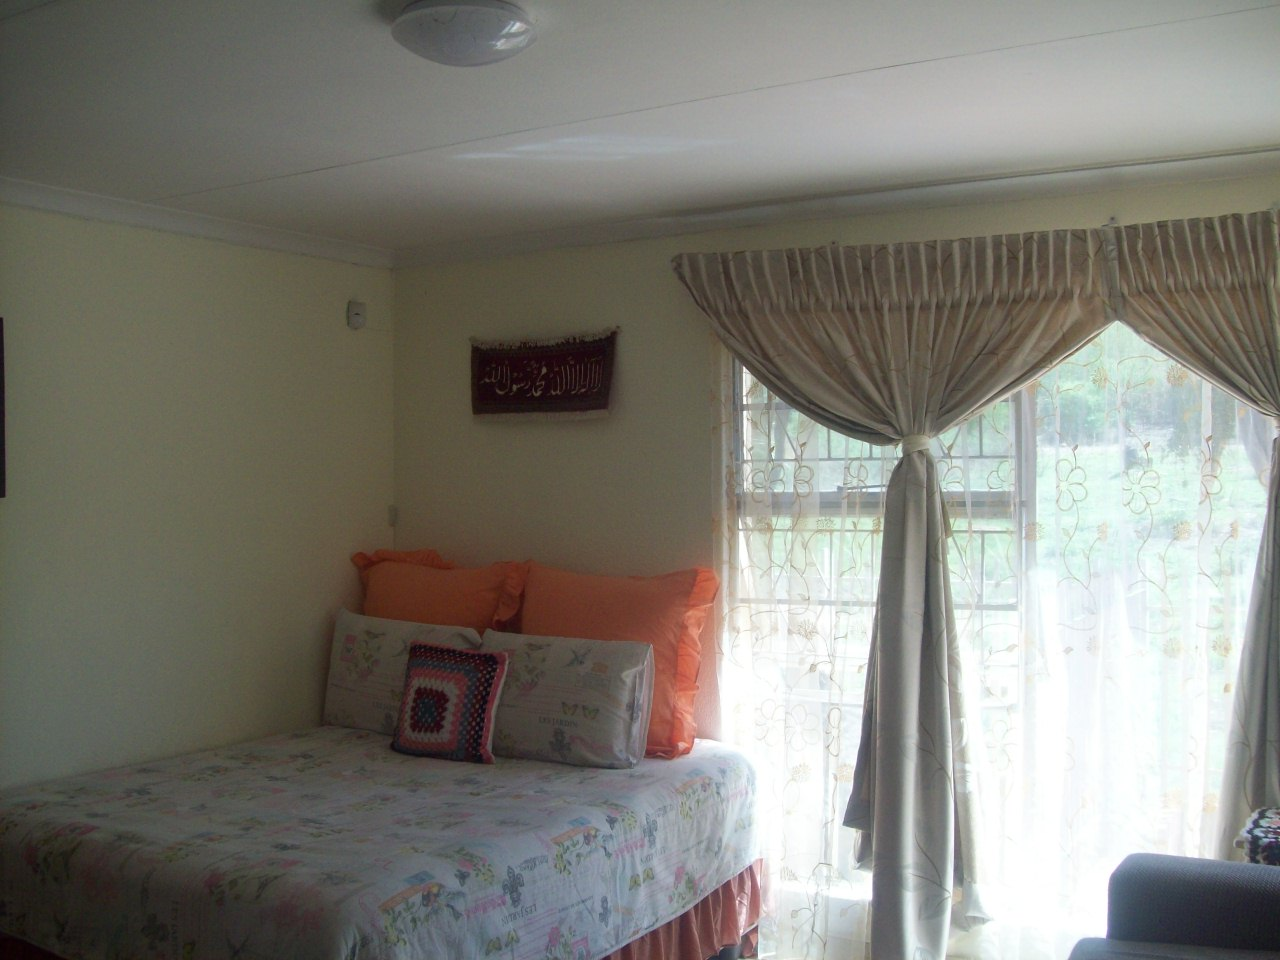 3 Bedroom Townhouse for sale in Bassonia ENT0071278 : photo#35